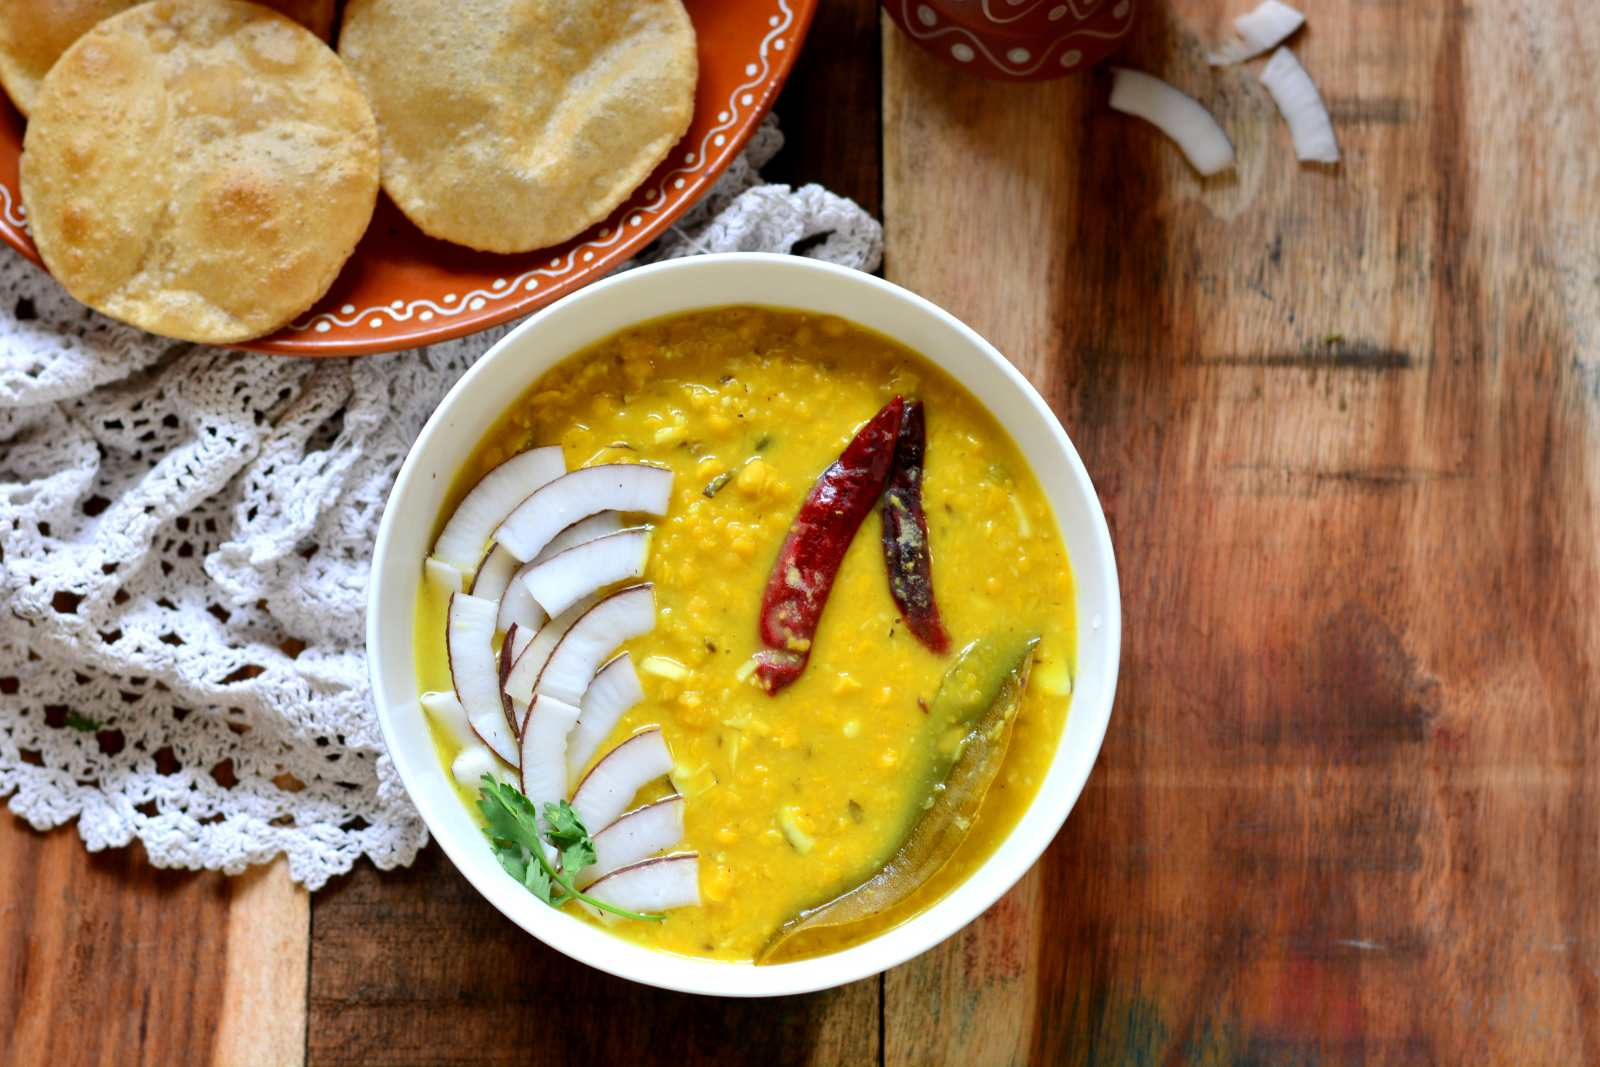 Cholar dal recipe bengali style chana dal by archanas kitchen cholar dal recipe bengali style chana dal forumfinder Gallery